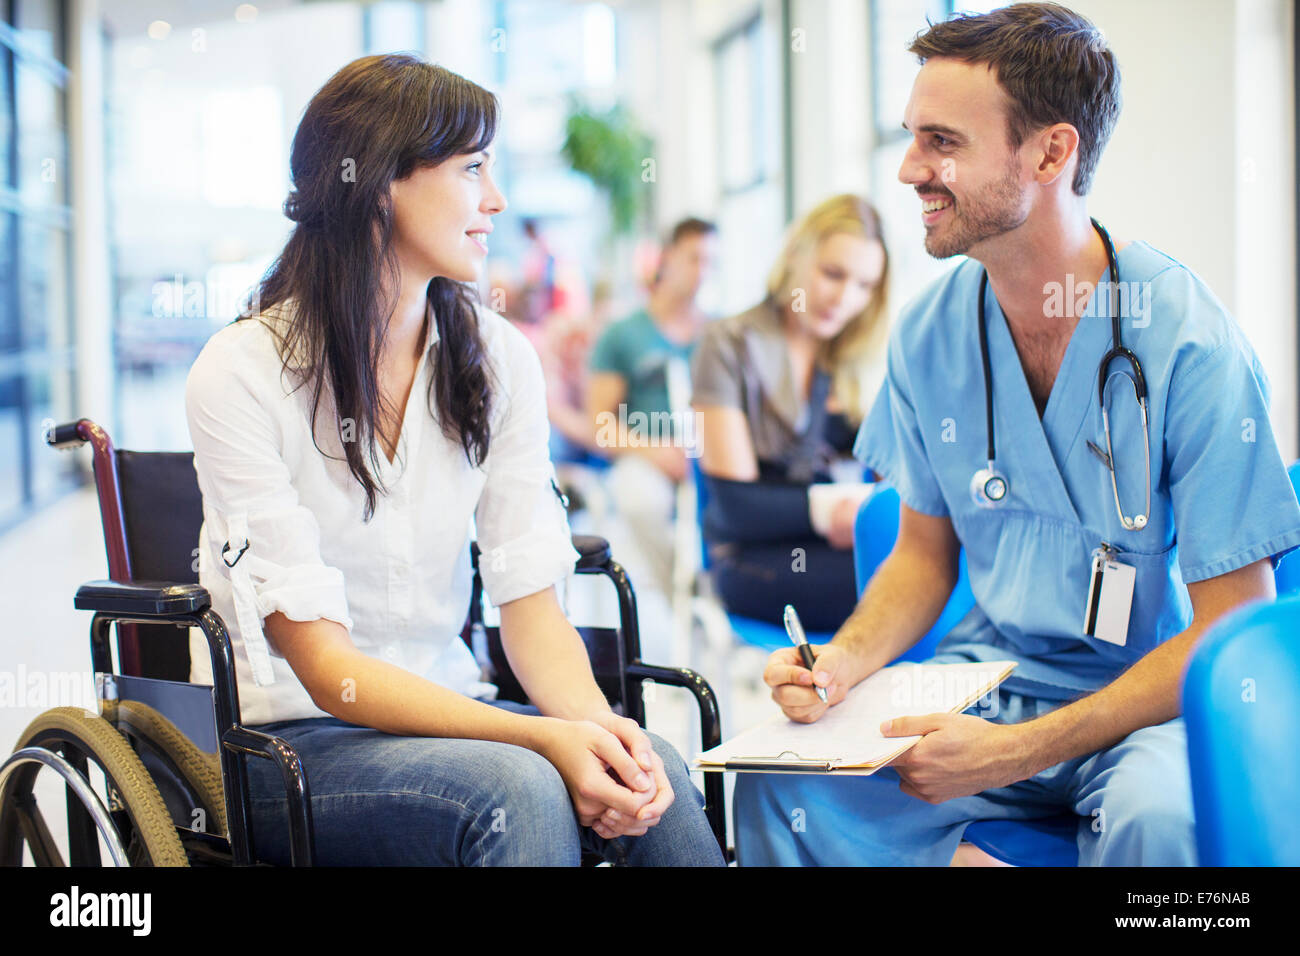 Patient in wheelchair talking to nurse in hospital - Stock Image